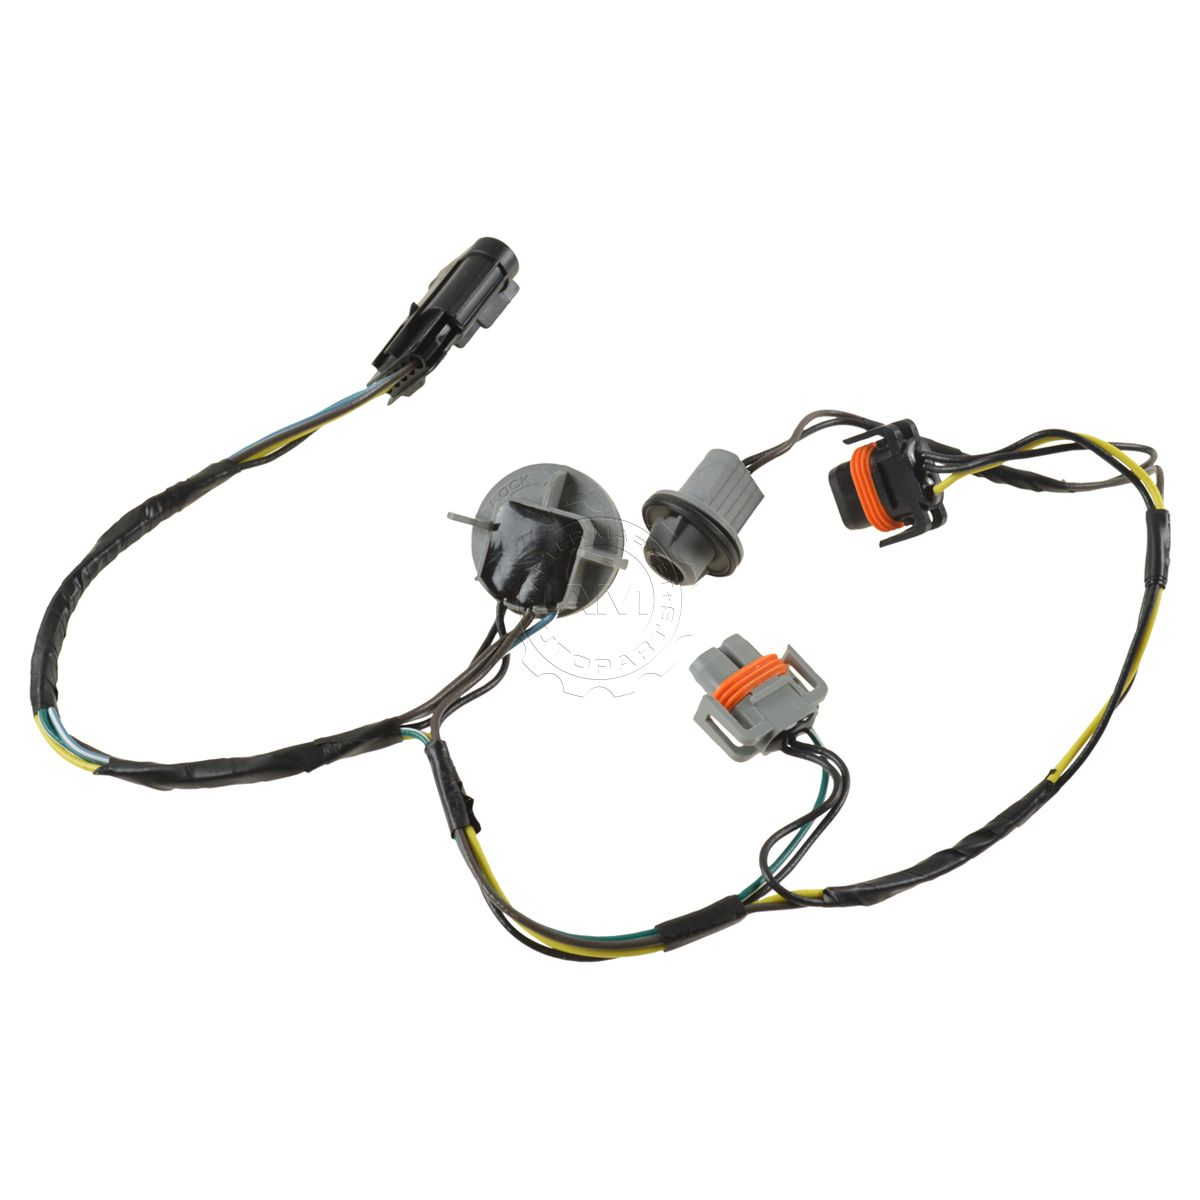 2008 chevy silverado headlight wiring harness